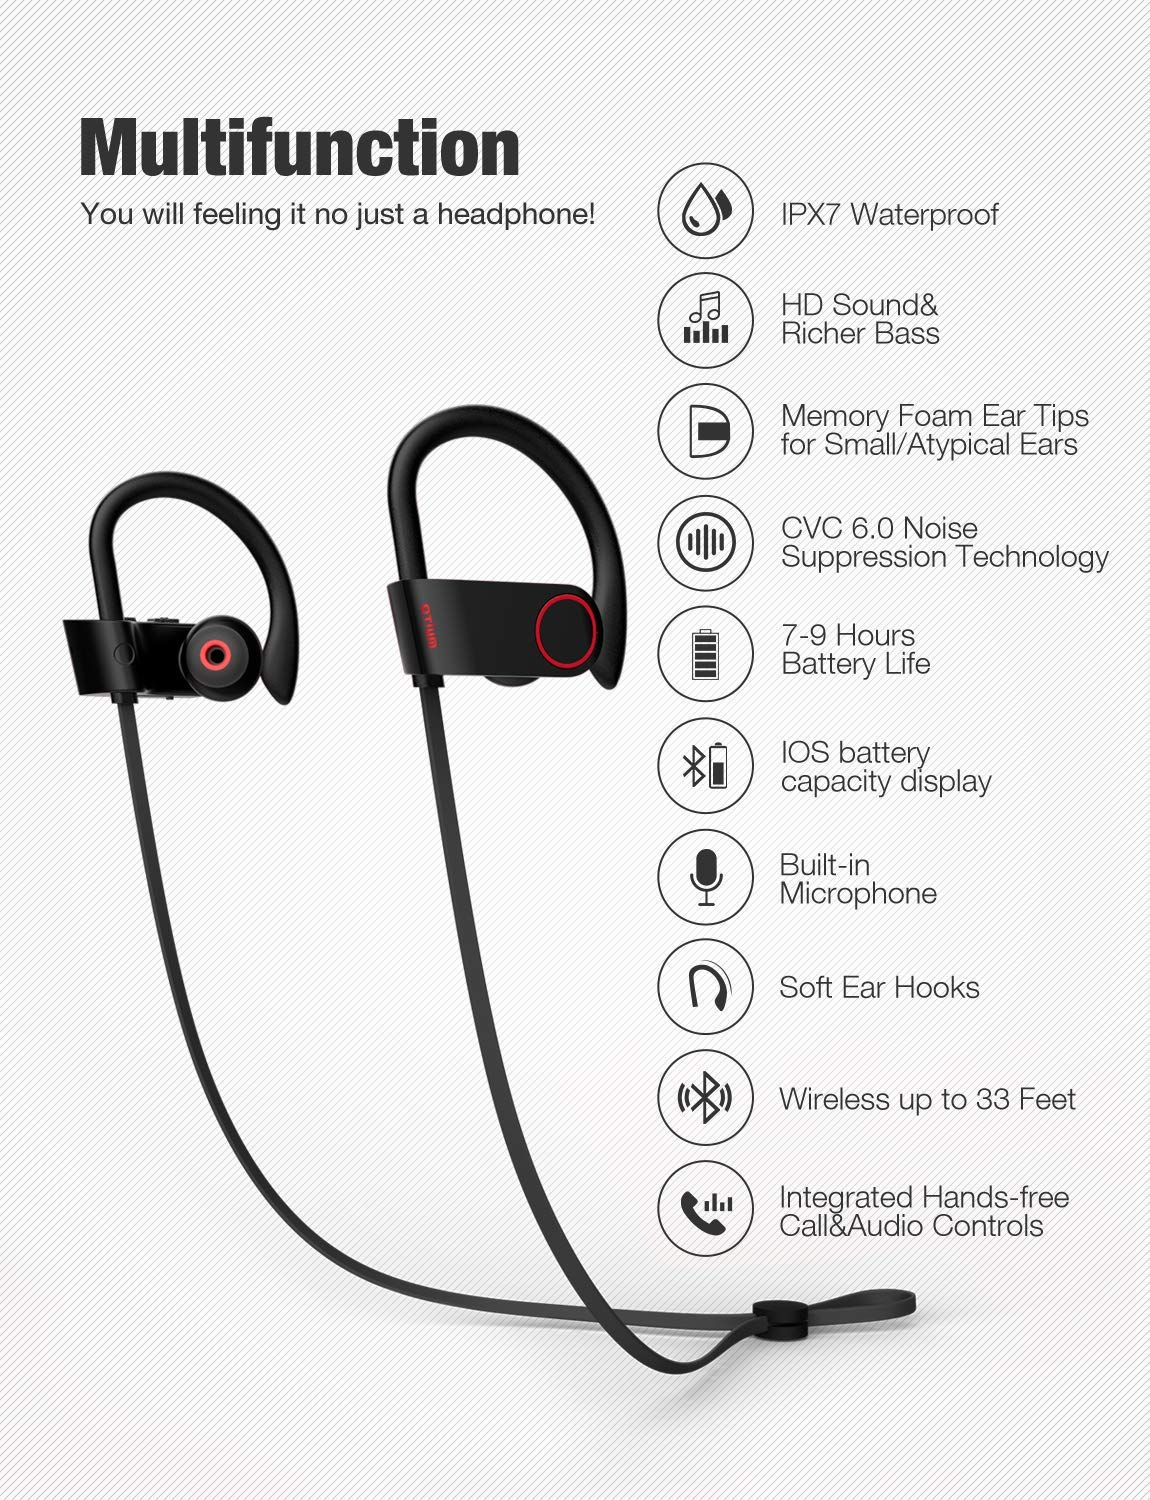 Bluetooth Headphones Bluetooth HD Stereo Exercise Headset Built in Mic Noise Cancelling headphones 9-hour Battery Play Time Waterproof Over-Ear Earphones Sport Earphone for IOS and Android Smartphones